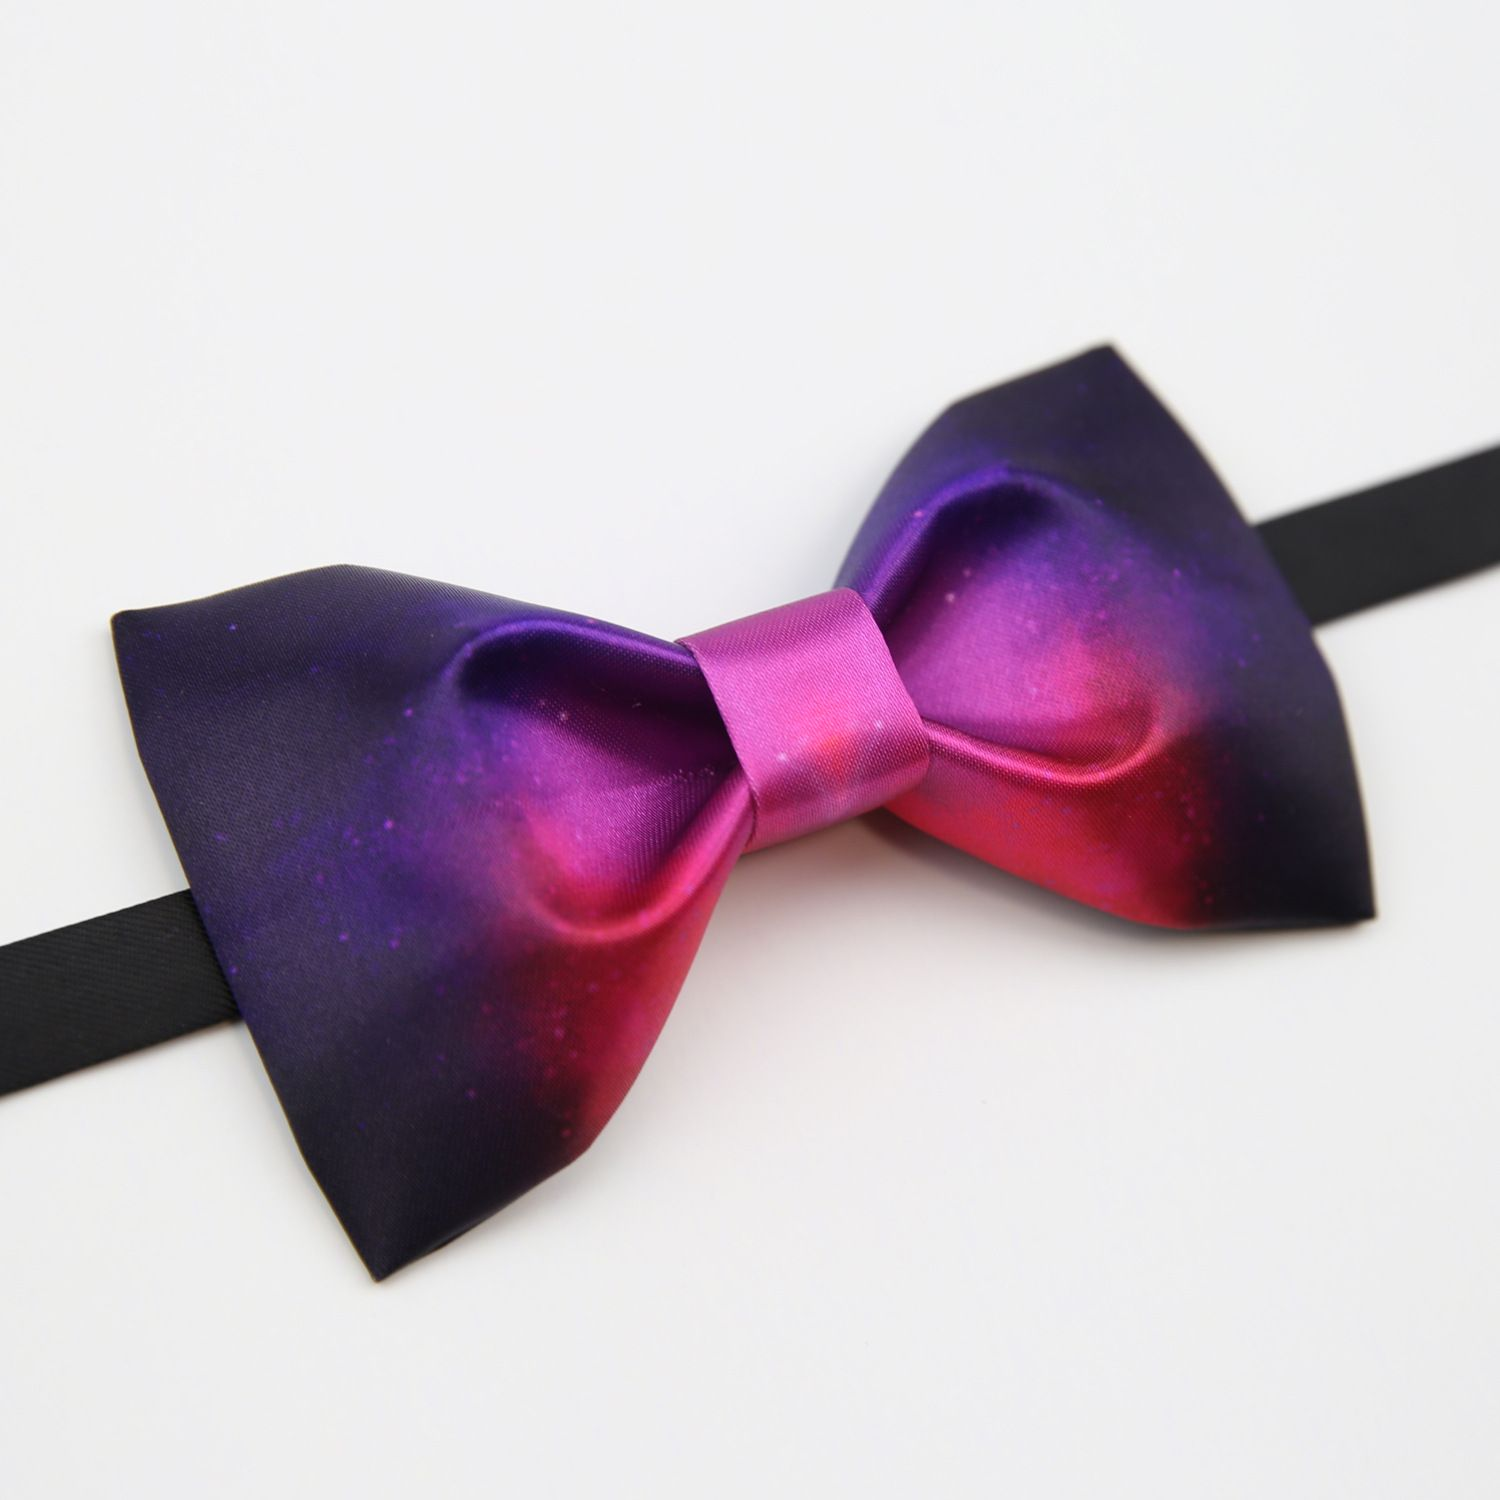 Brand:            Adrion's Collection  Price:             USD18.9/Piece with Gift Box Applicable:       gender Unsex  Age:              for adulthood  Product:          category collar flowers, bow tie  Pro-Materials:    100% fine polyester silk  Applicable-scene: leisure / color / Party / wedding  Bow tie size:     12cm * 6cm    Delivery:Shipped to all rge world by Airmail.  We are free designers from Qingdao, China  All the bow tie is our original design  Everything is High-End Hand-made